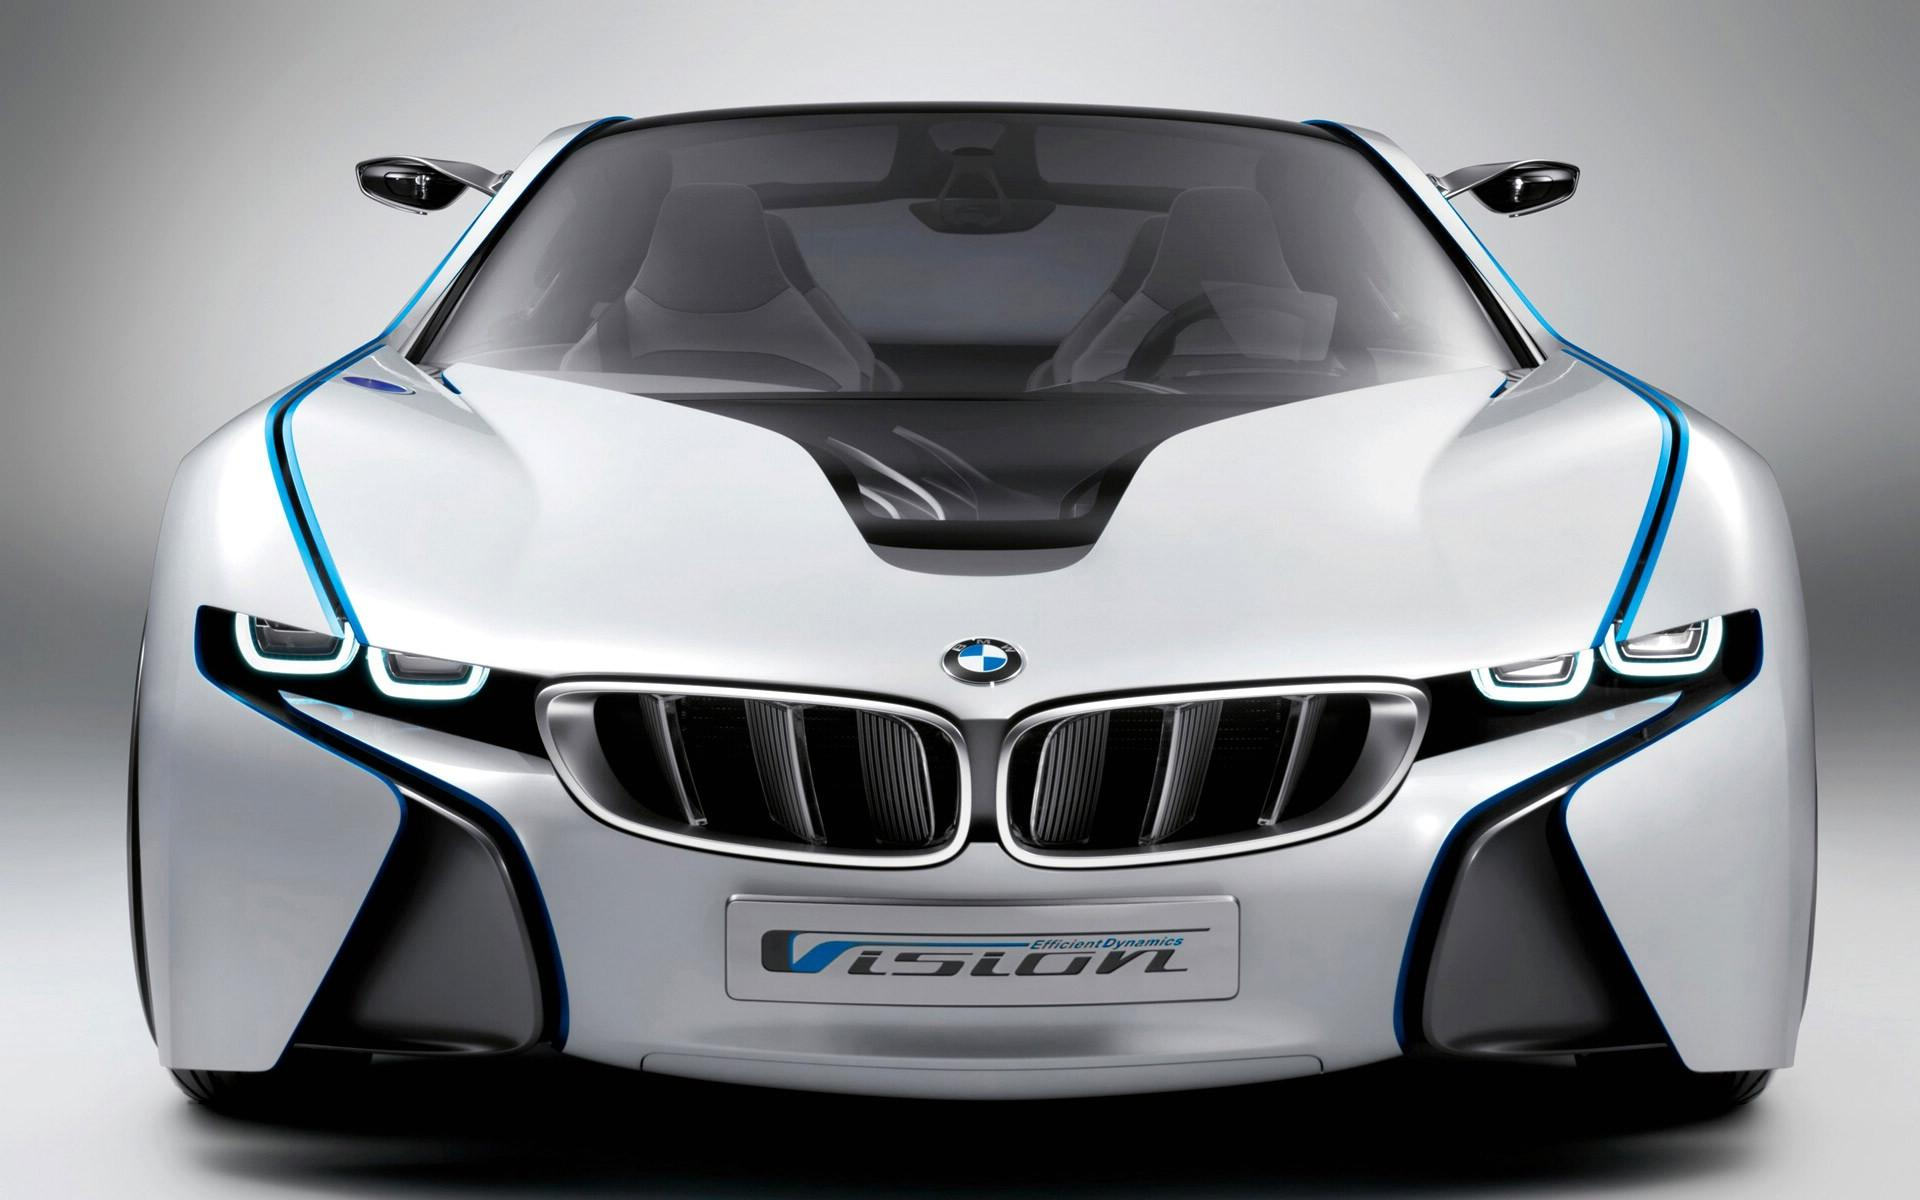 BMW Vision Super Car Wallpaper HD 1920x1200 ImageBankbiz 1920x1200